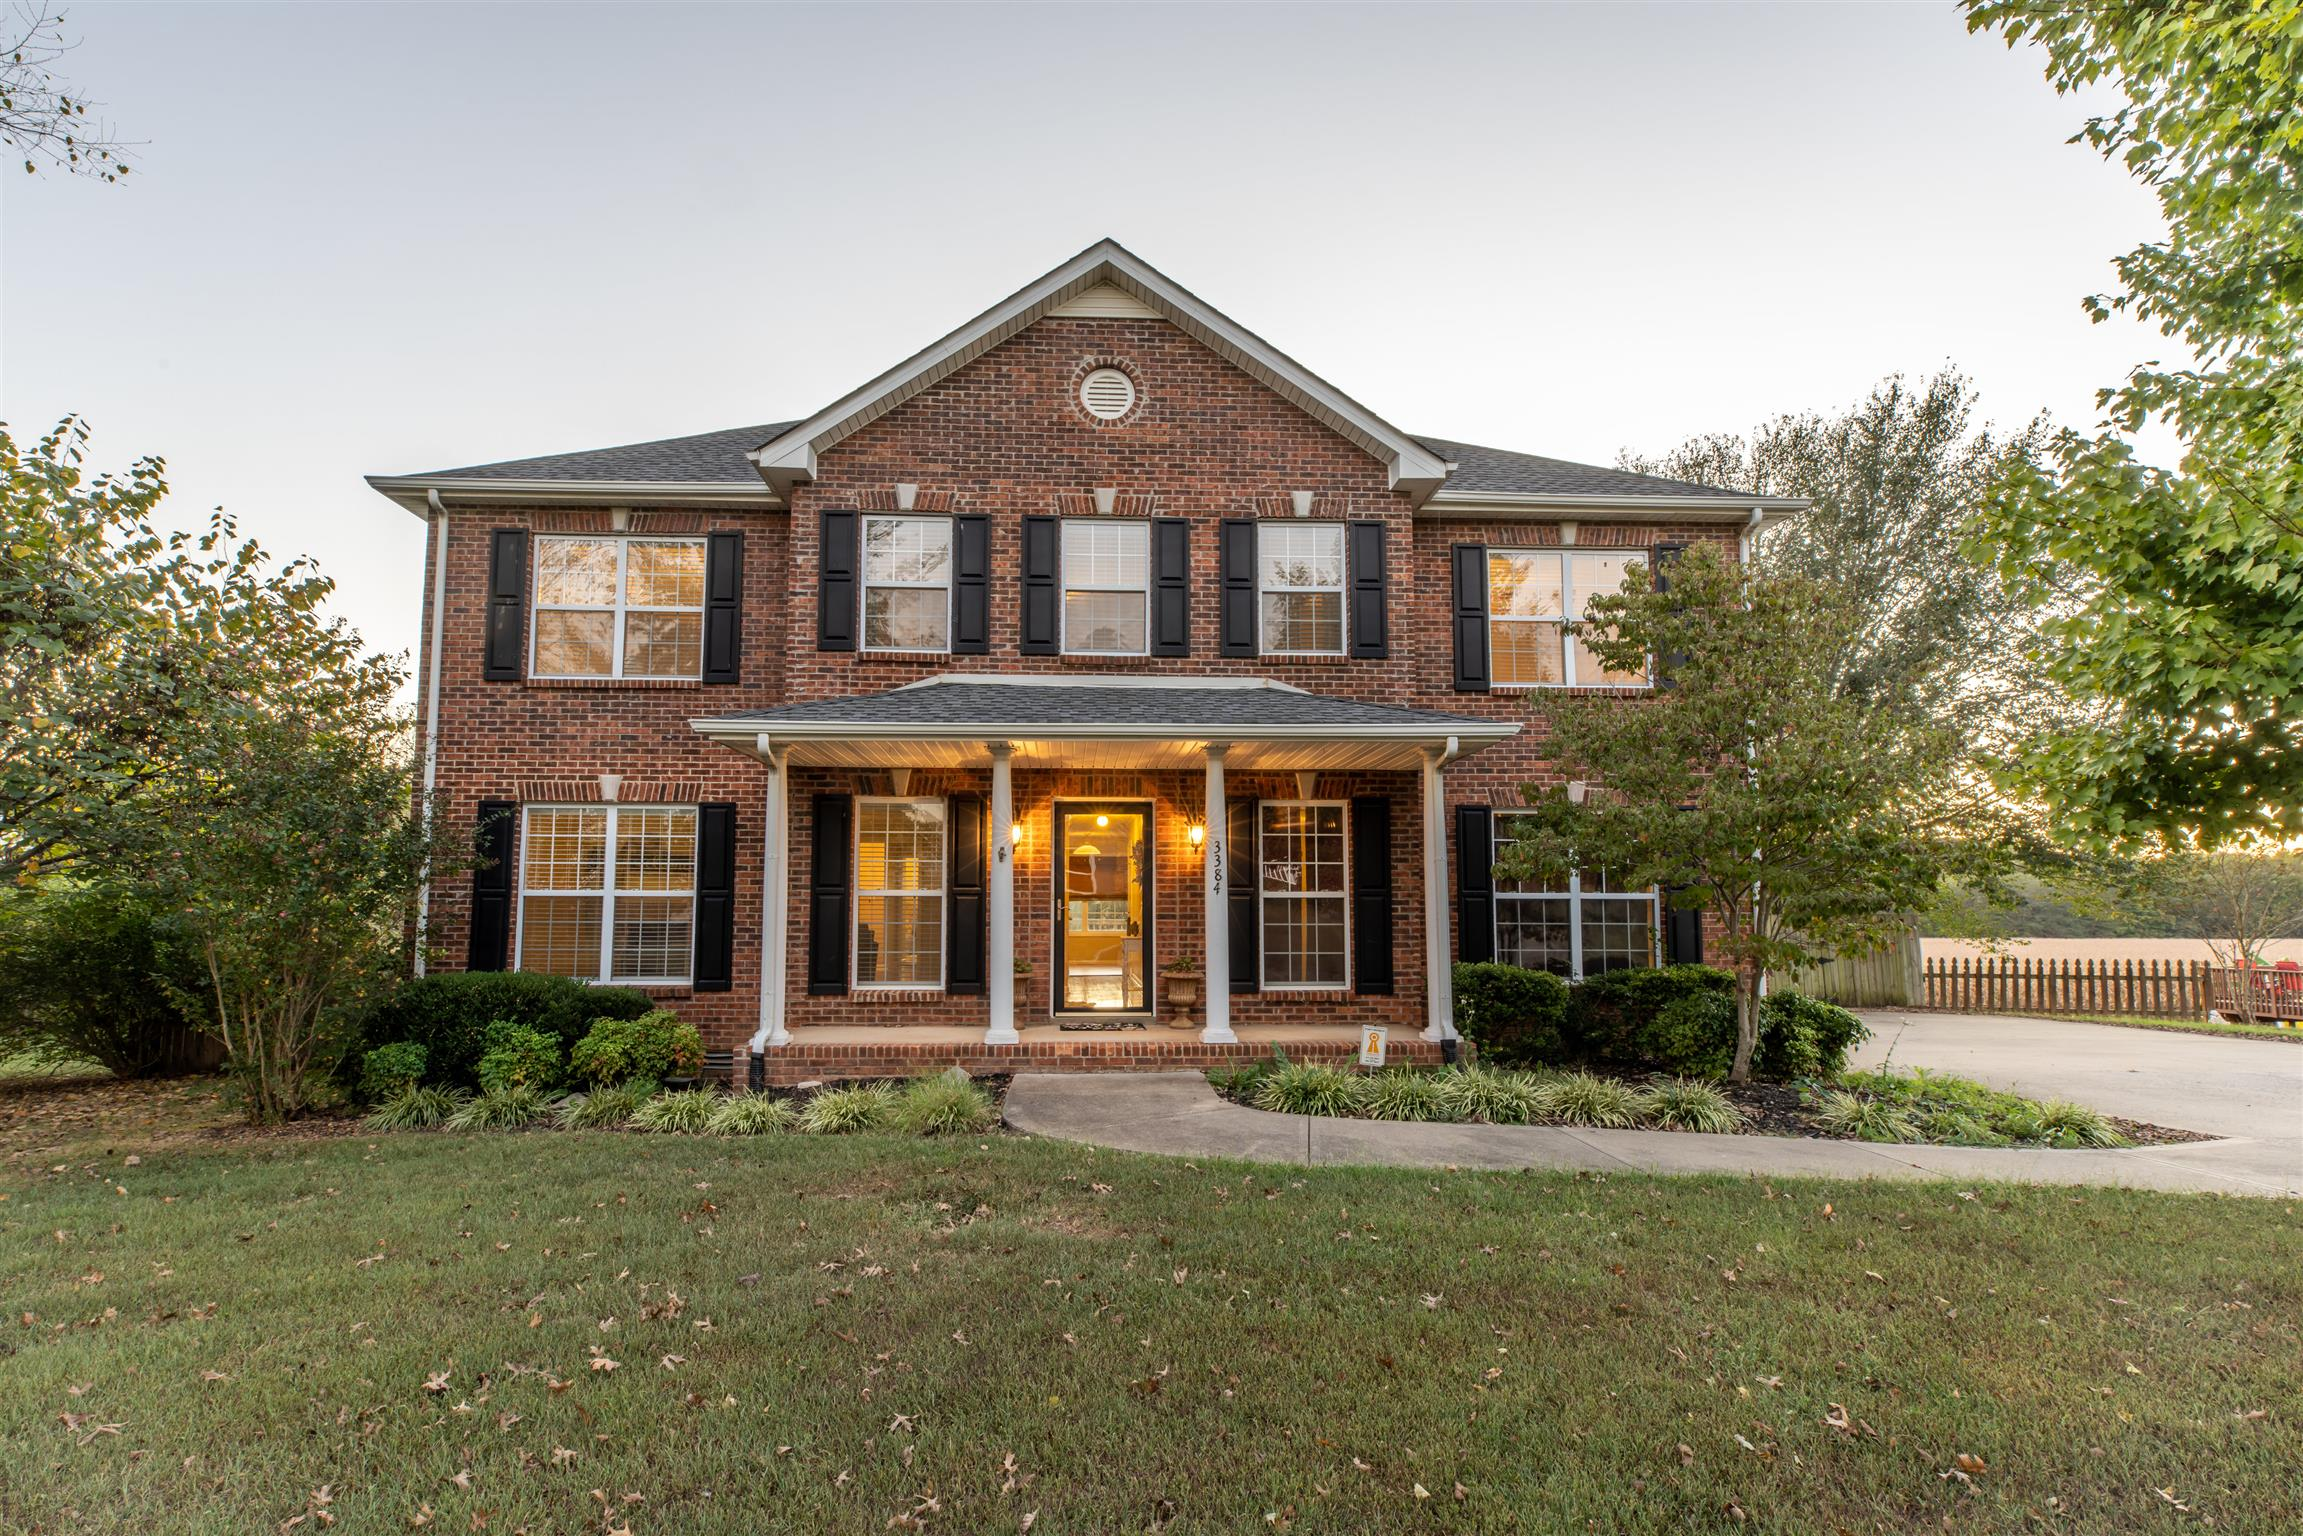 3384 Heatherwood Trc, Clarksville, TN 37040 - Clarksville, TN real estate listing